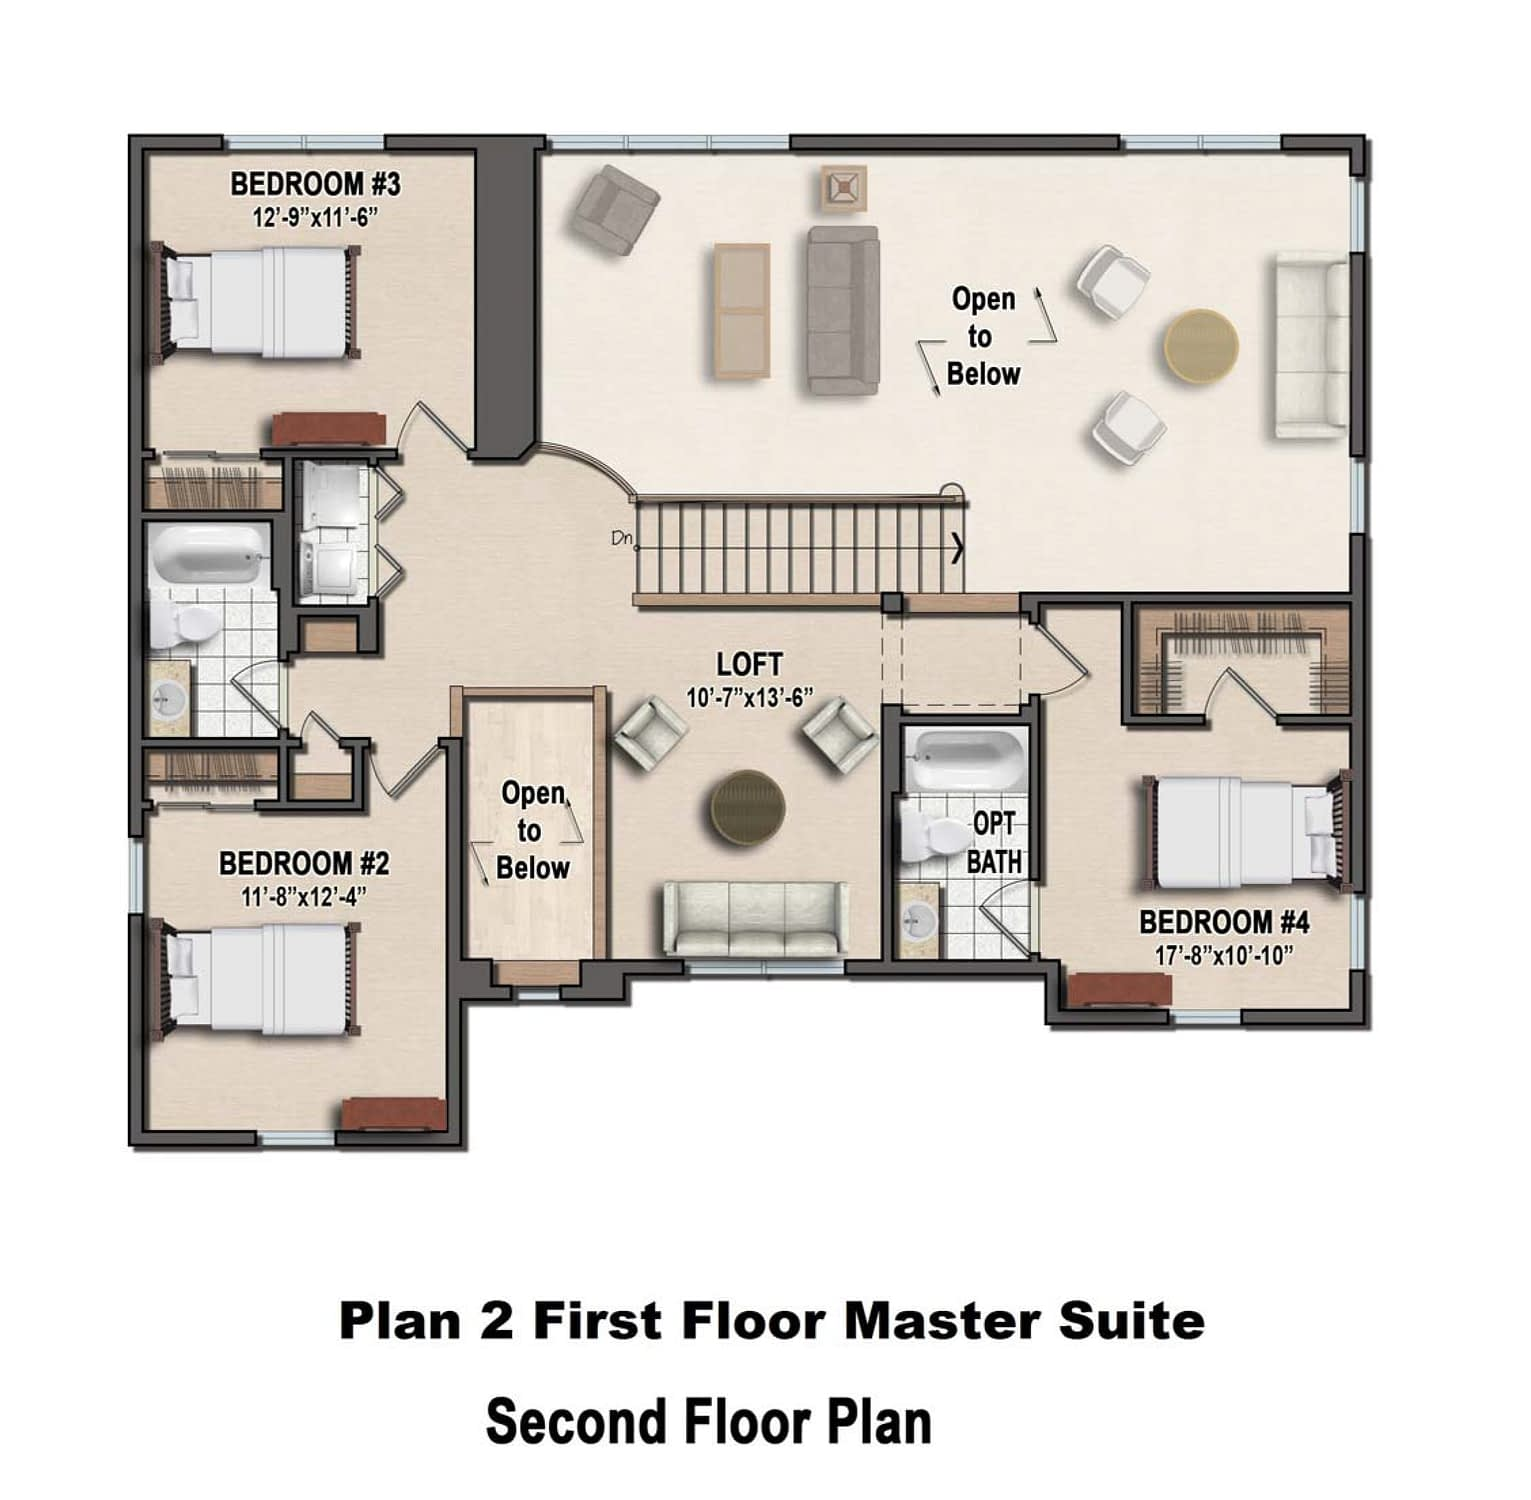 plan-2-first-floor-master-suite-brochure-2